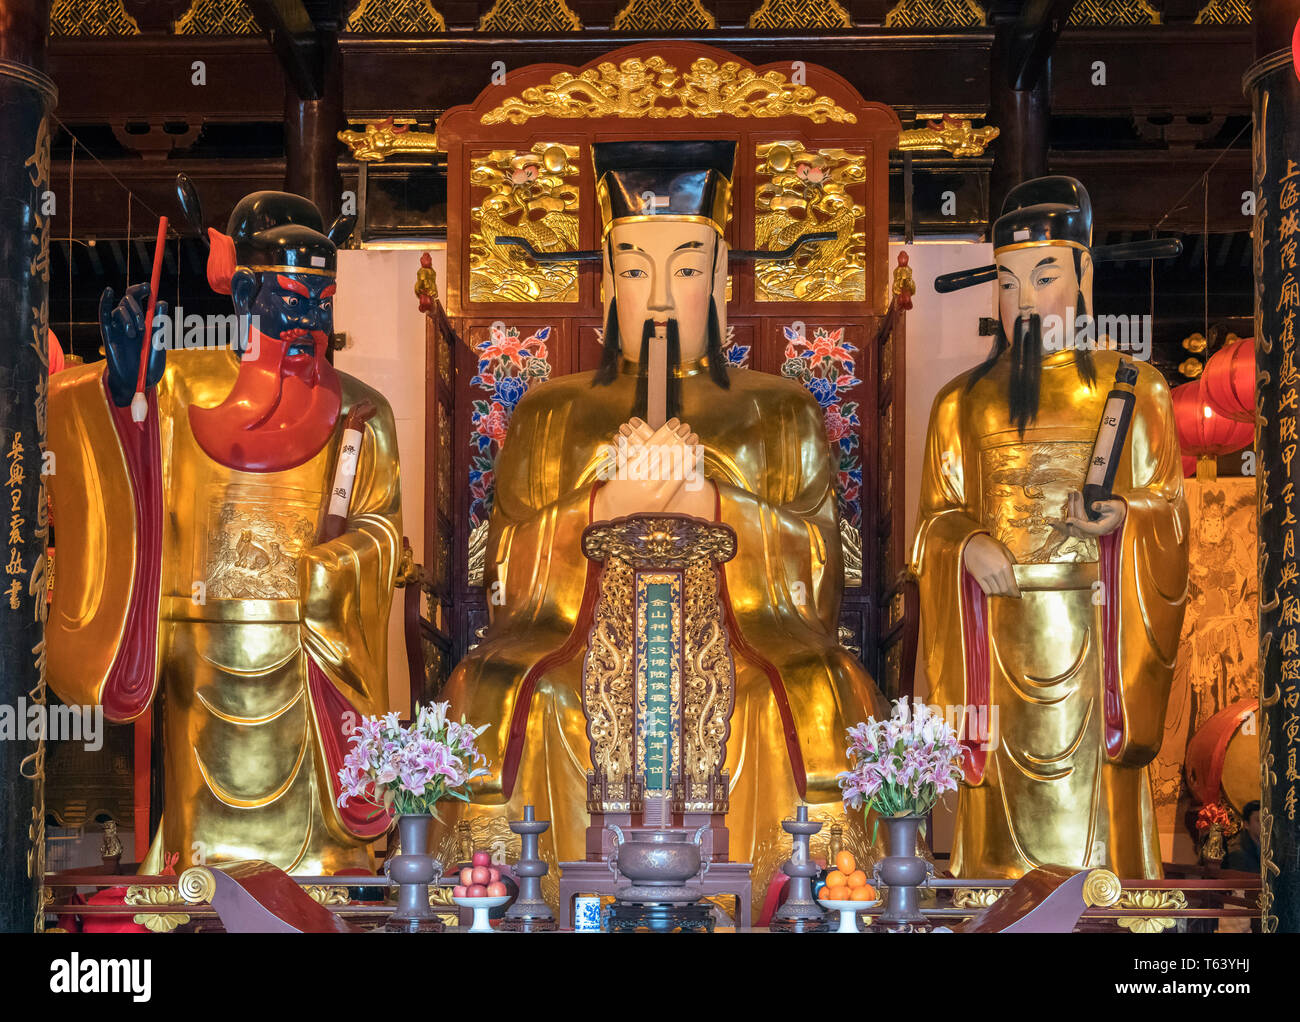 Statues of gods on the altar in the Taoist Temple of the Town Gods (or Temple of the City Gods), Yuyuan Gardens,  Shanghai, China - Stock Image